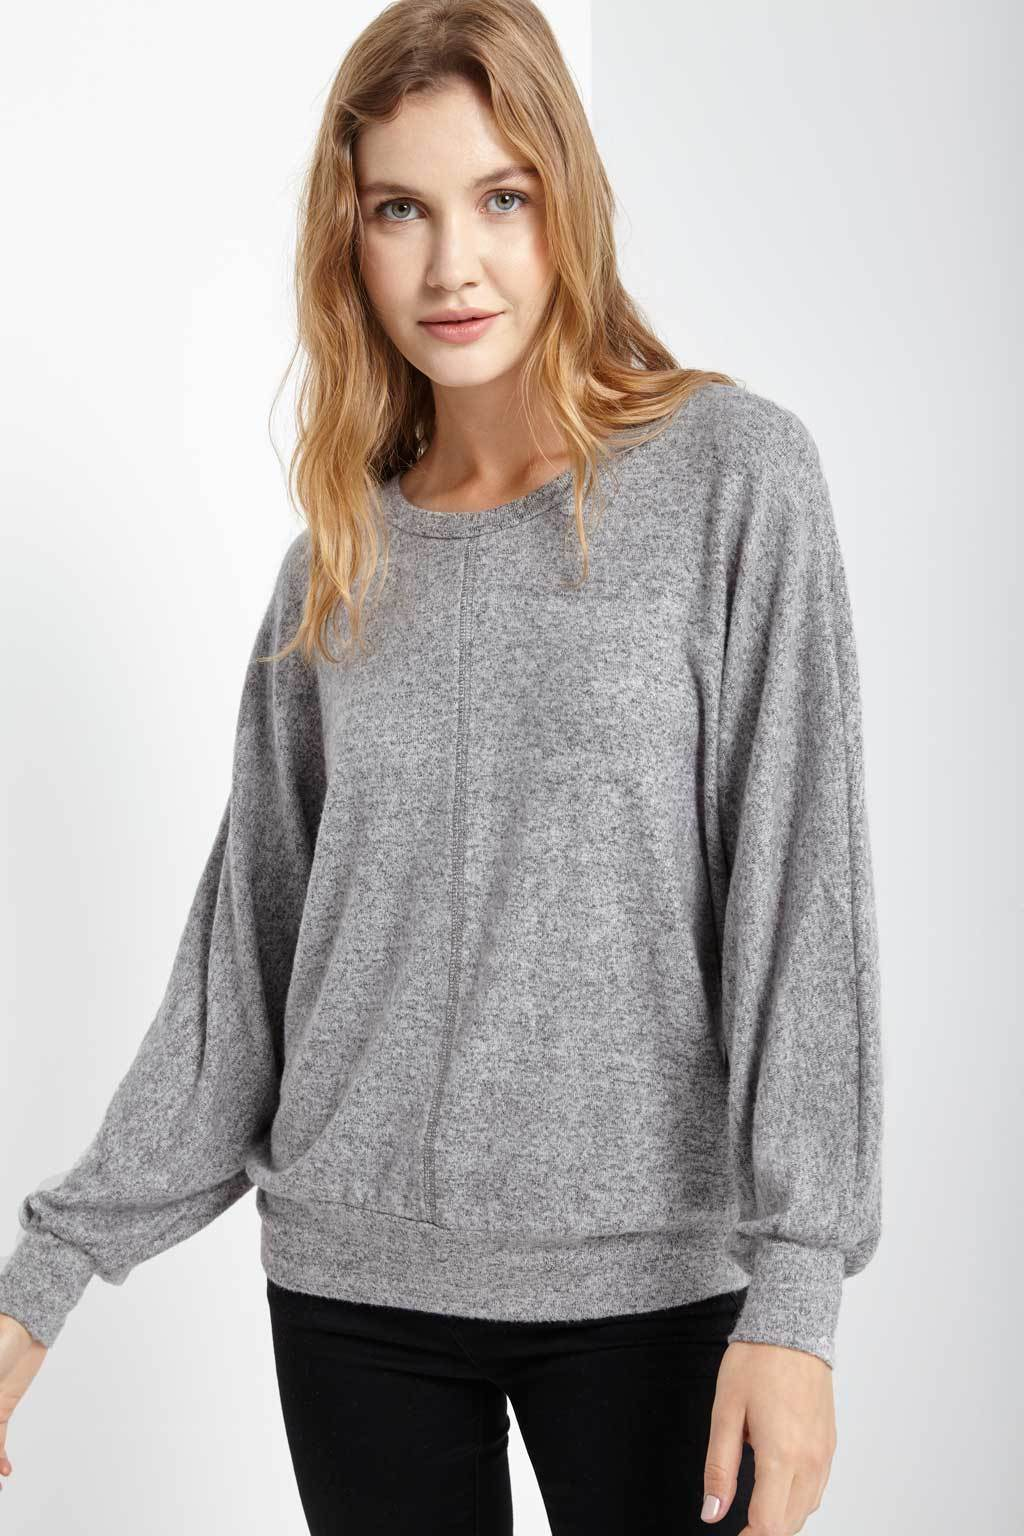 Poshsquare Tops S / Heather Grey Wells Dolman Sleeve Top